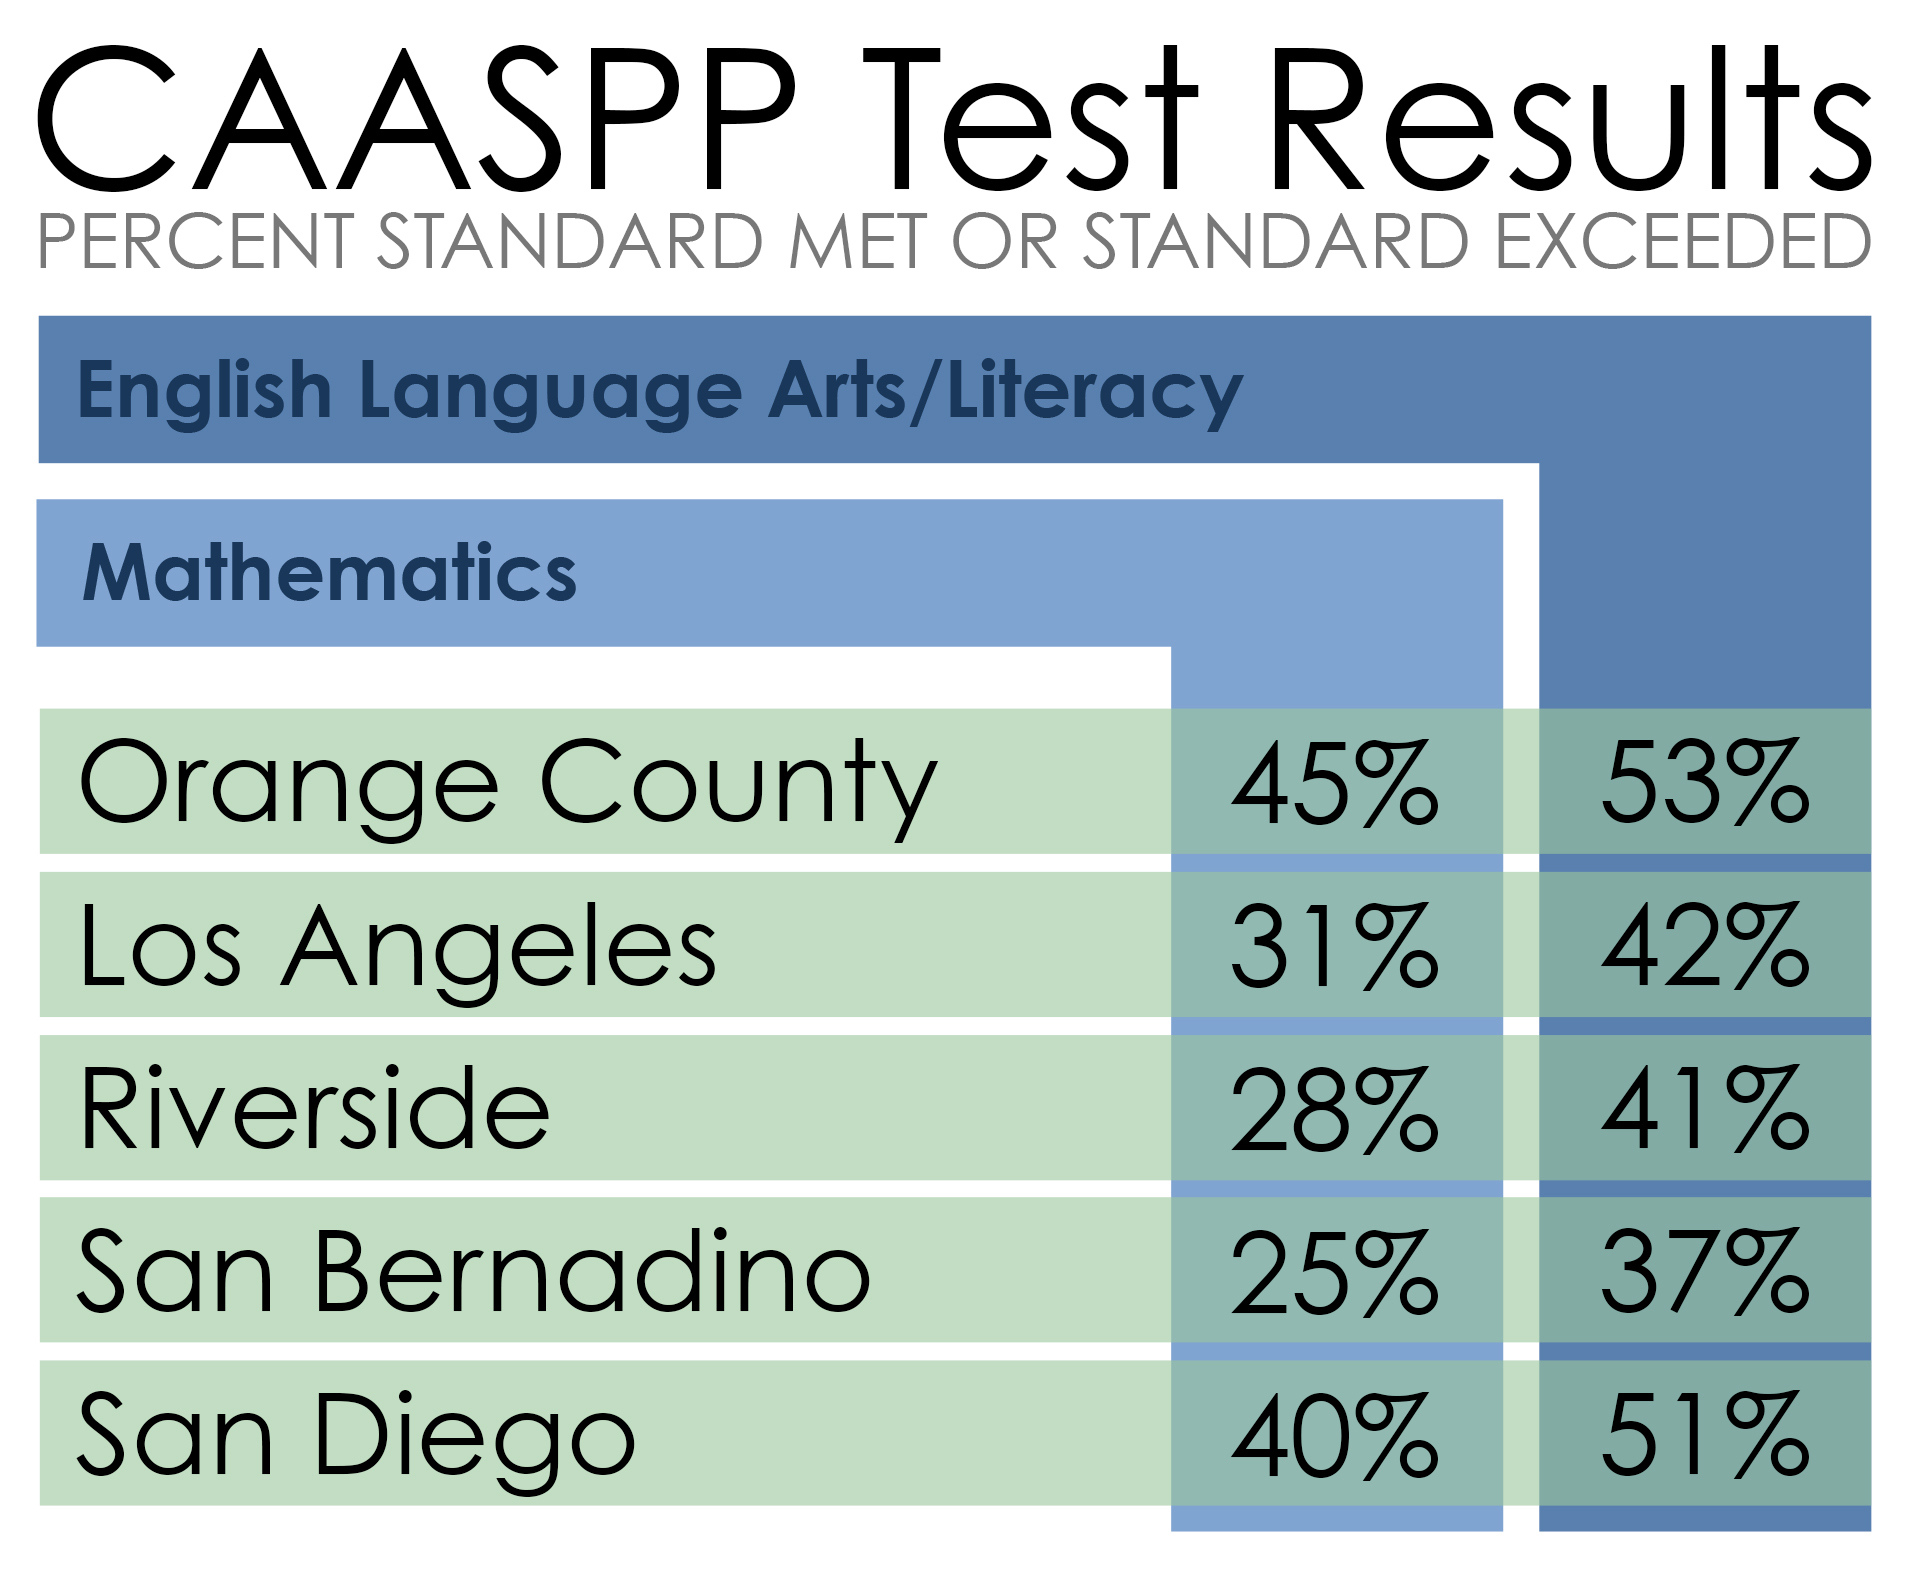 CAASPP test results chart